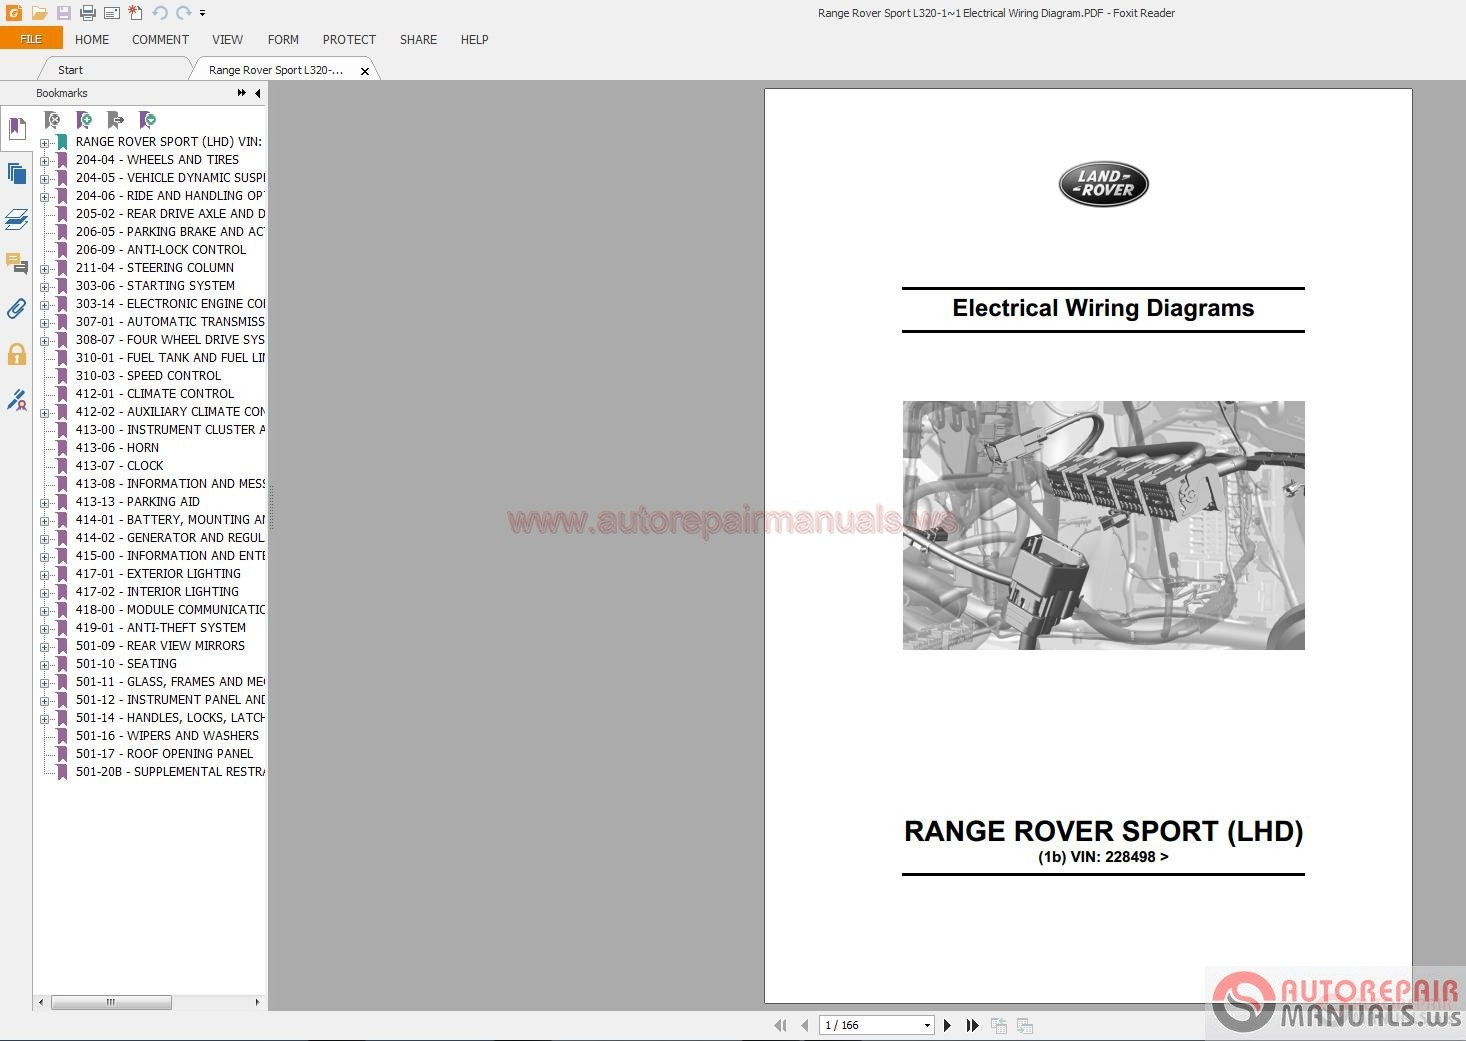 Range Rover Sport L320 1 1 Electrical Wiring Diagram